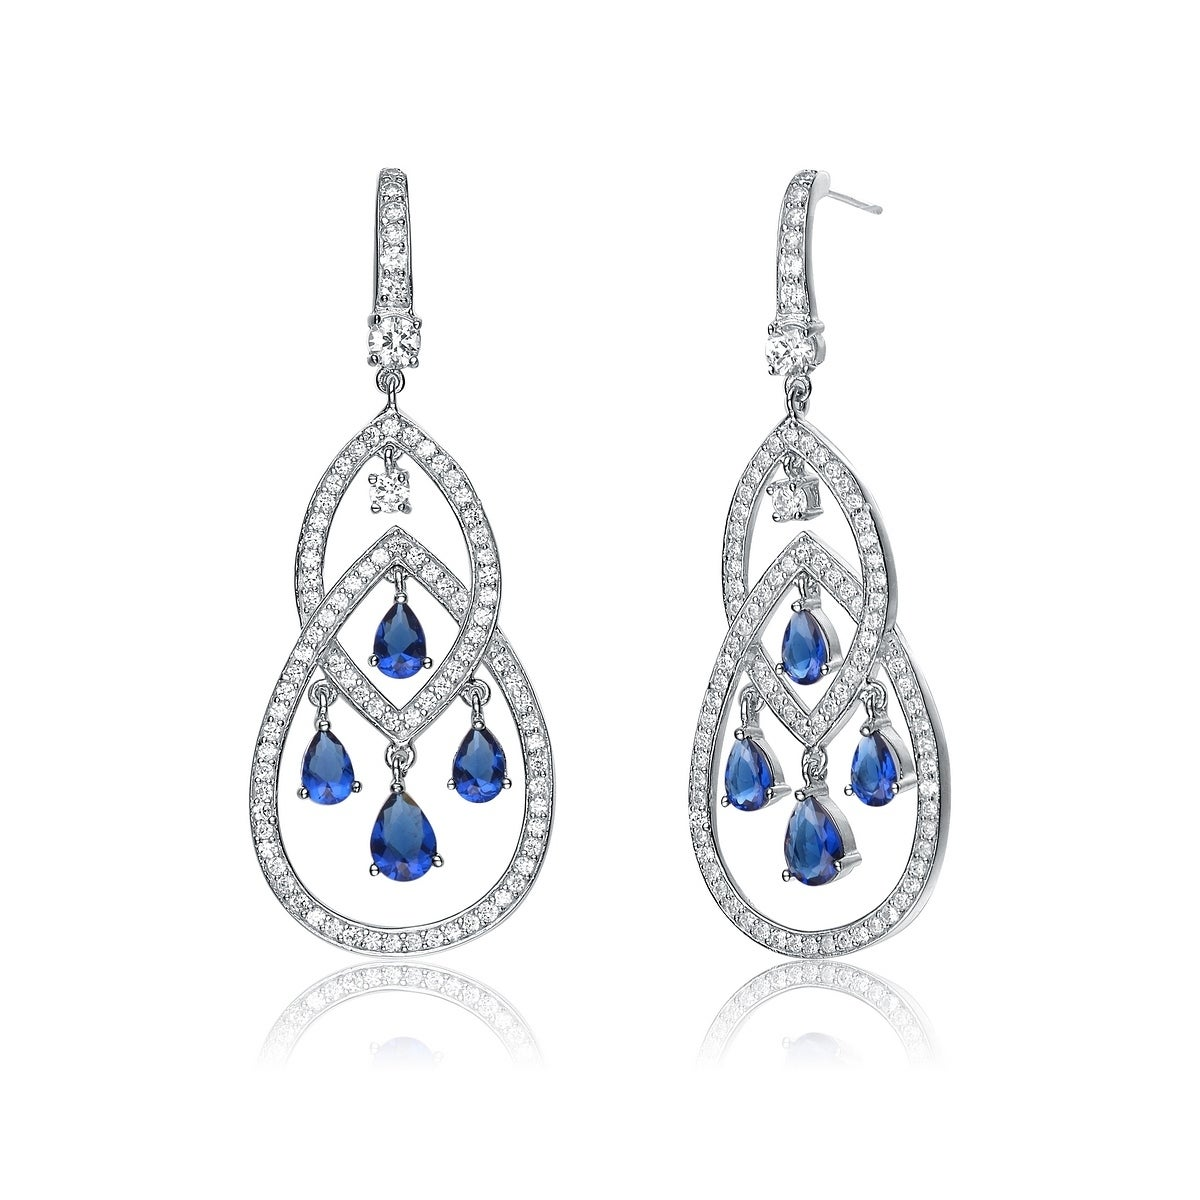 b4952cb3ae9c Collette Z Sterling Silver with Rhodium Plated Sapphire Blue Pear with  Clear Round Cubic Zirconia Two Pear Chandelier Earrings